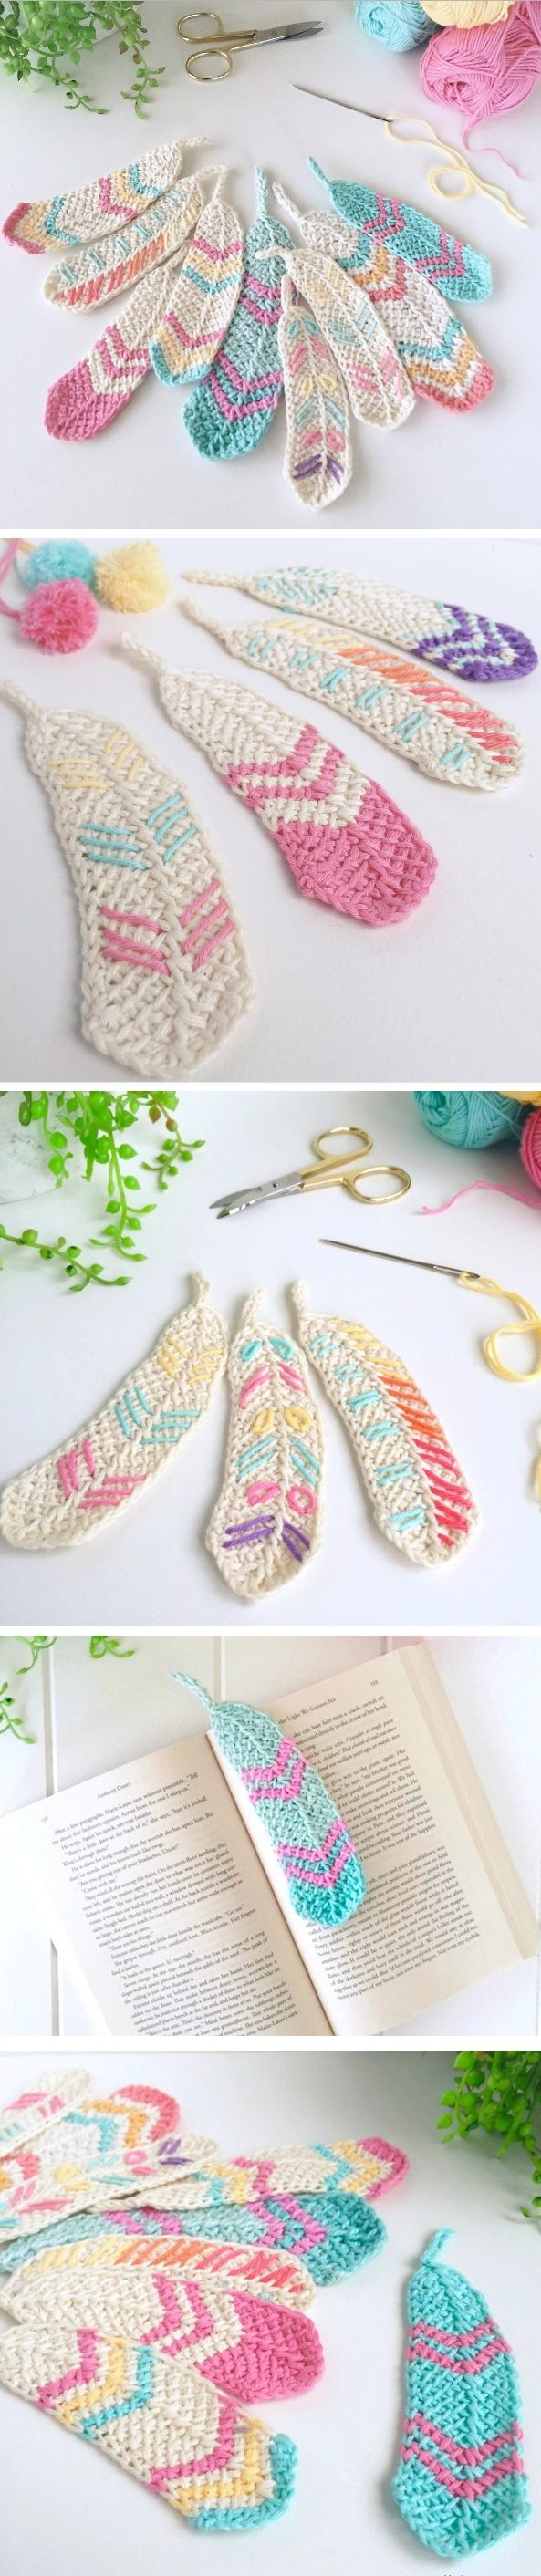 Crochet Feathers Pattern Free Tutorial All The Best Ideas | Stuff I ...